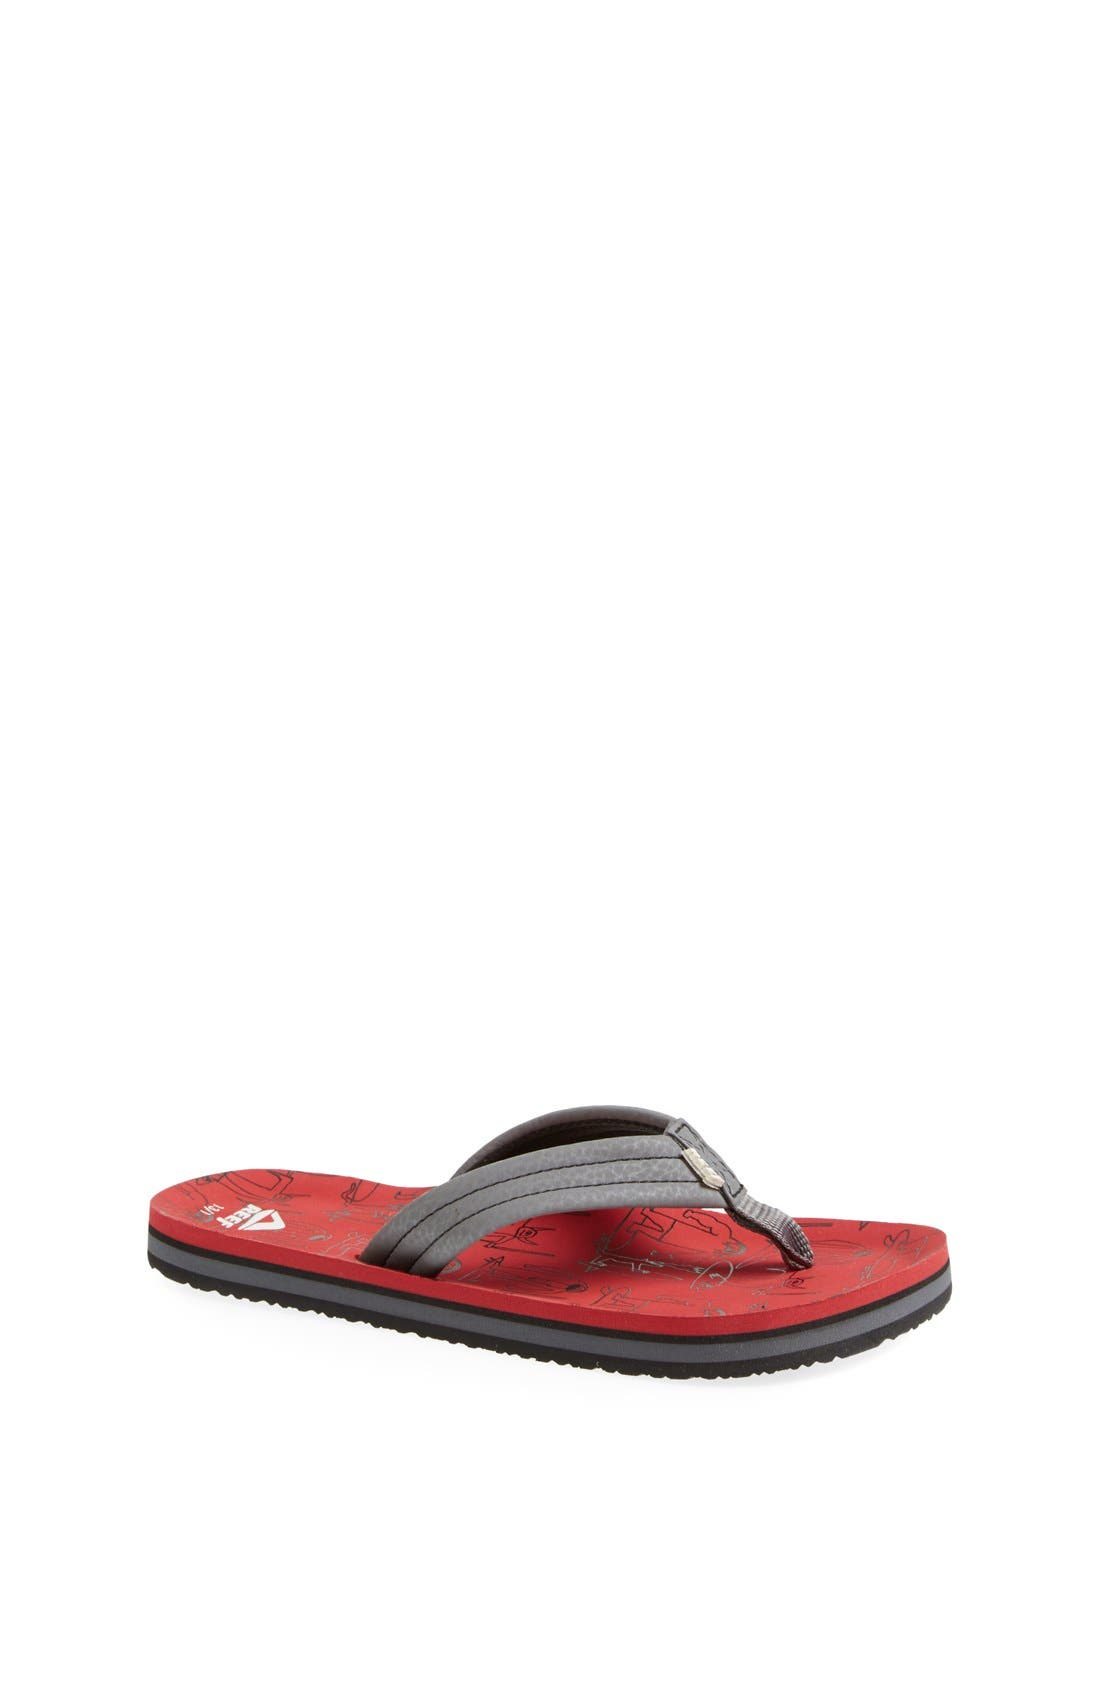 Alternate Image 1 Selected - Reef 'Ahi - Monster' Surf Sandal (Baby, Walker, Toddler, Little Kid & Big Kid)